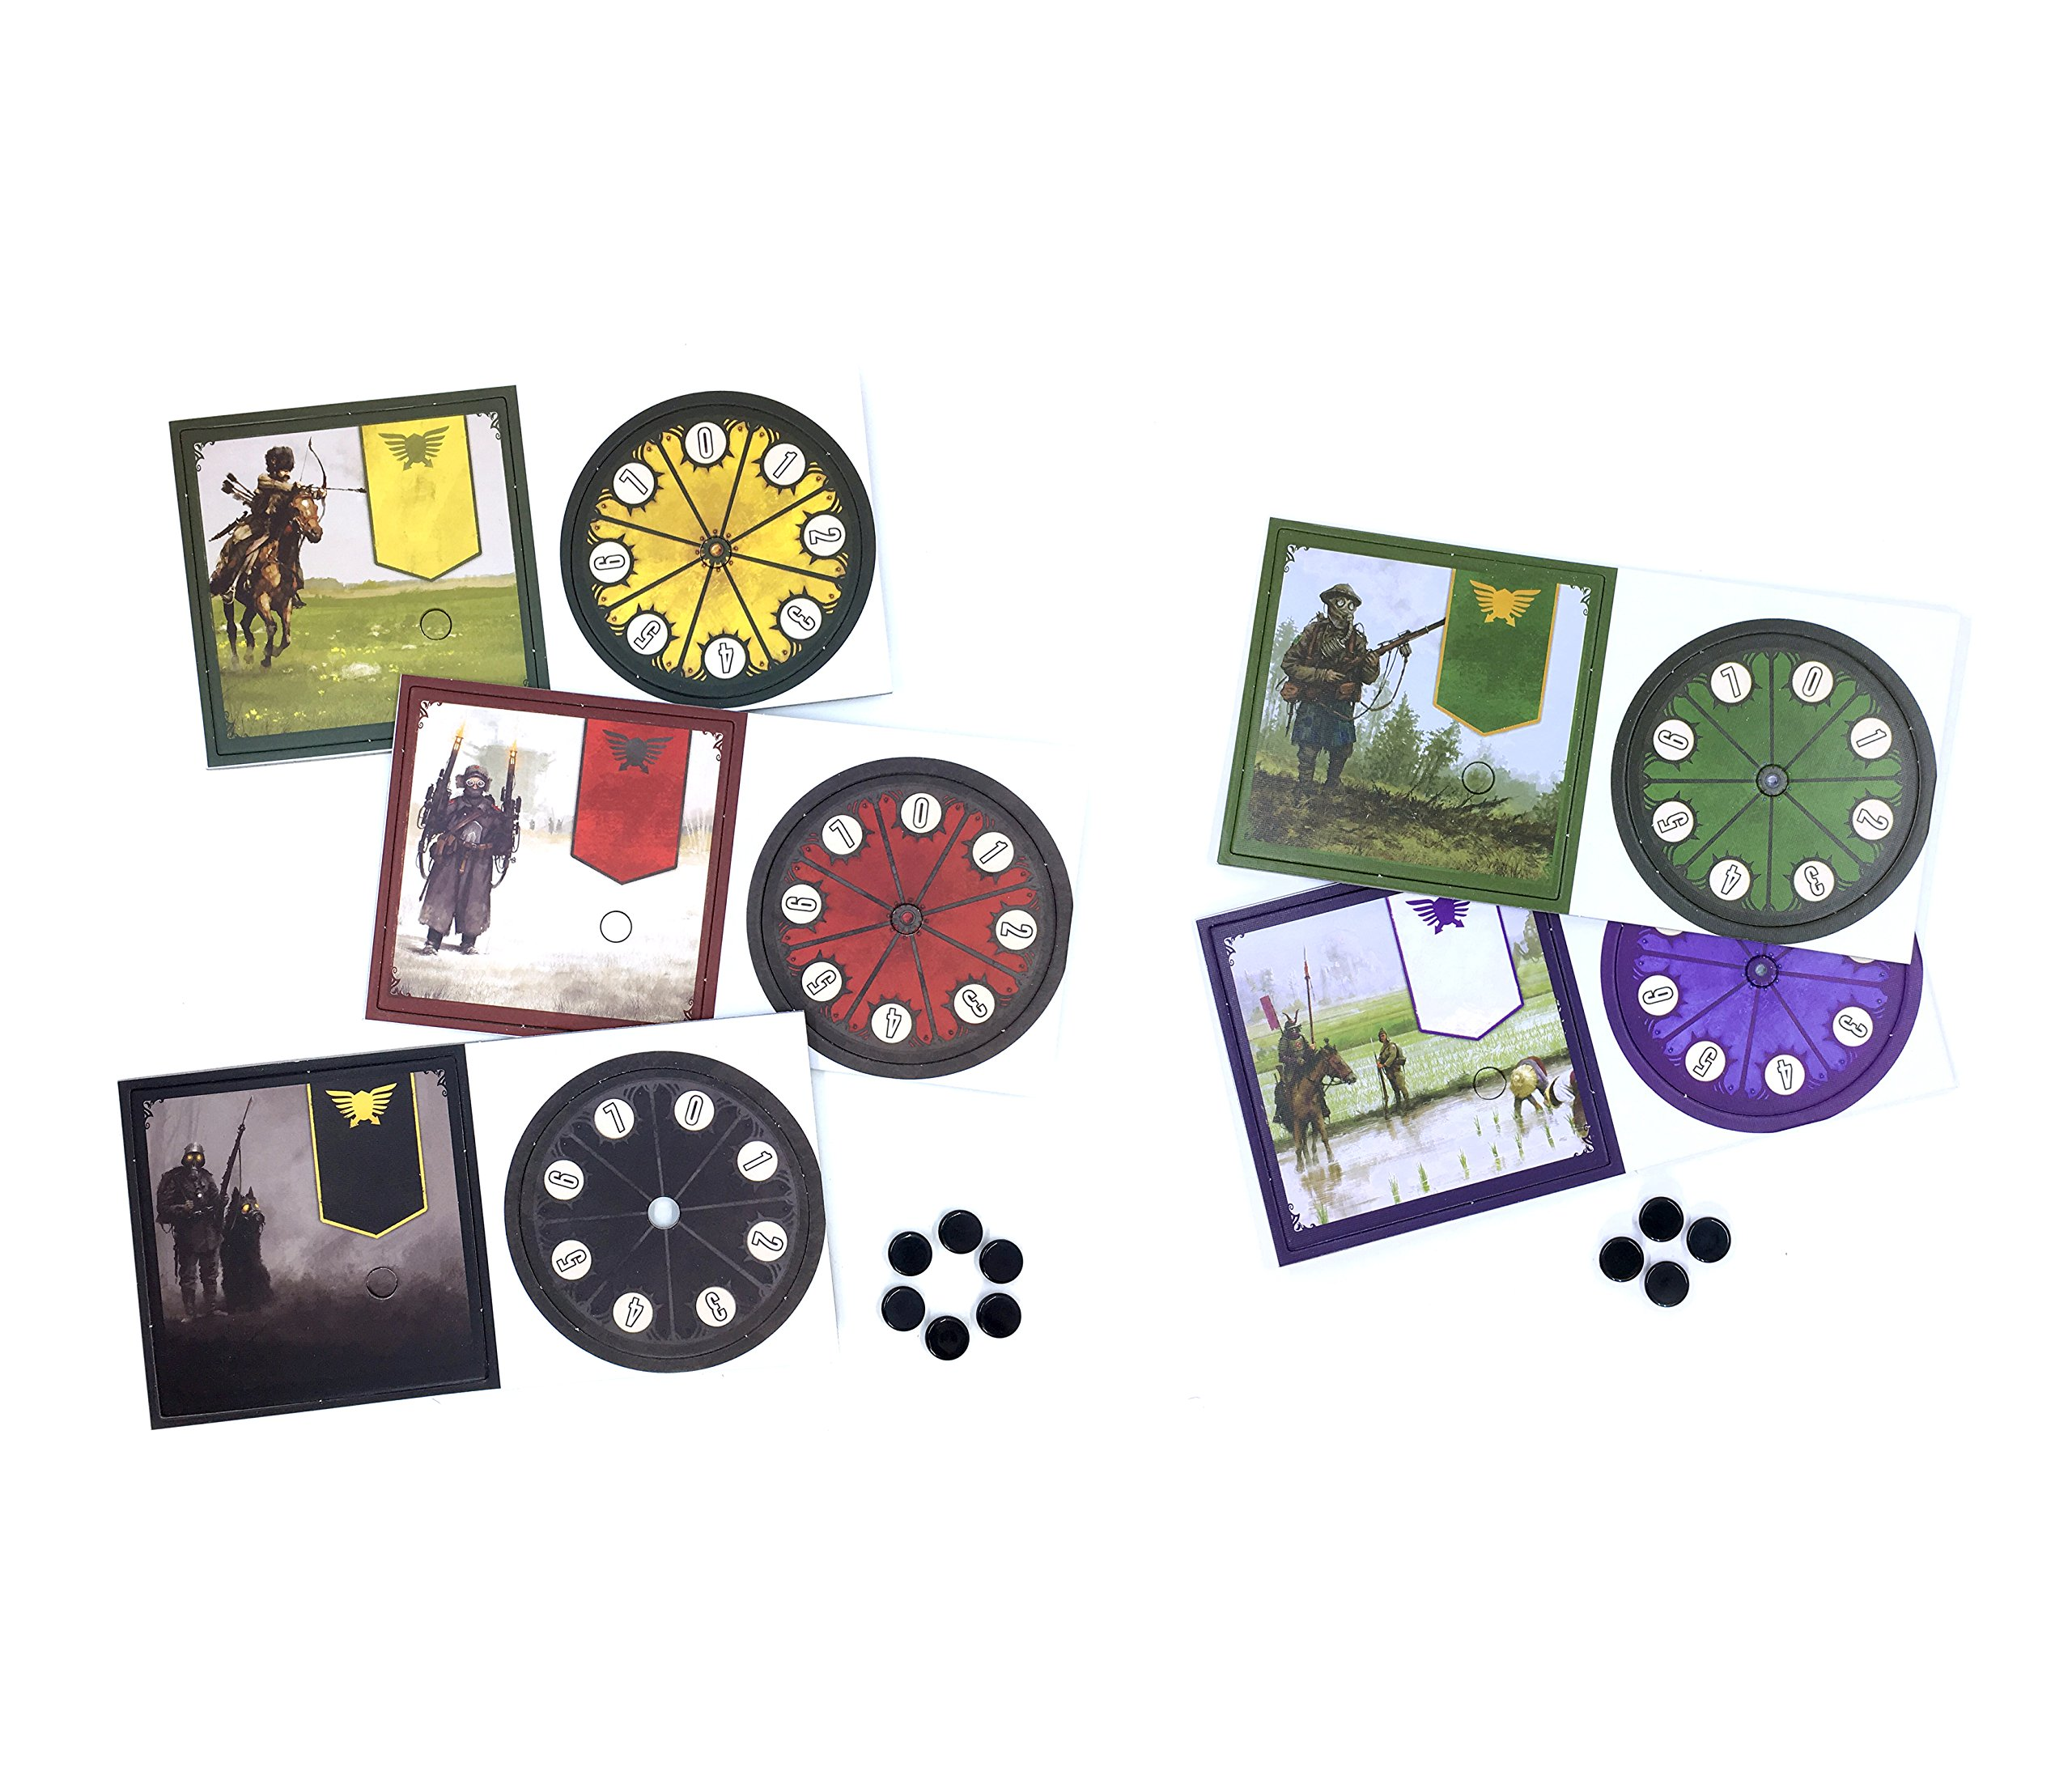 Five Promo Power Dials for Scythe the Board Game